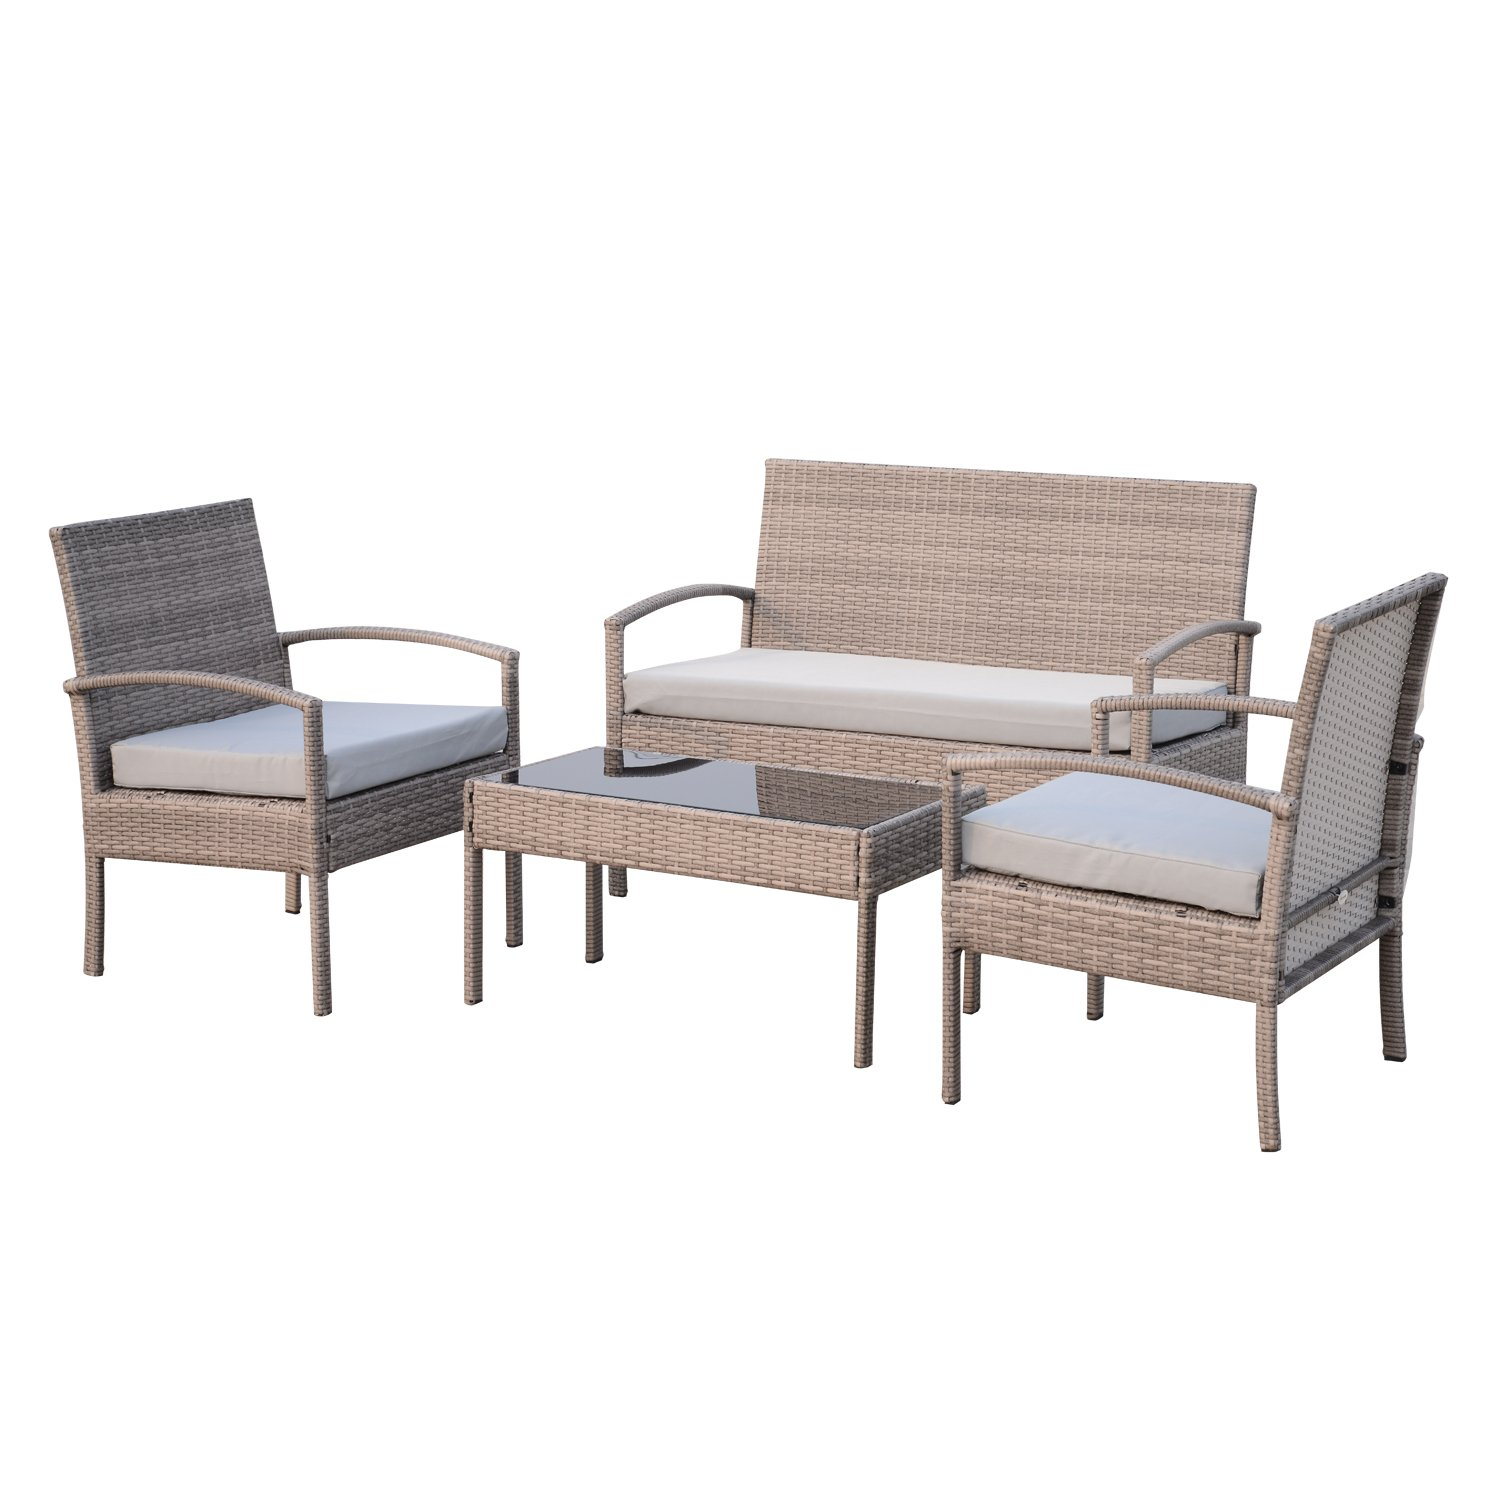 Outsunny 4 Piece Outdoor Rattan Wicker Patio Conversation Set - Light Grey by Outsunny